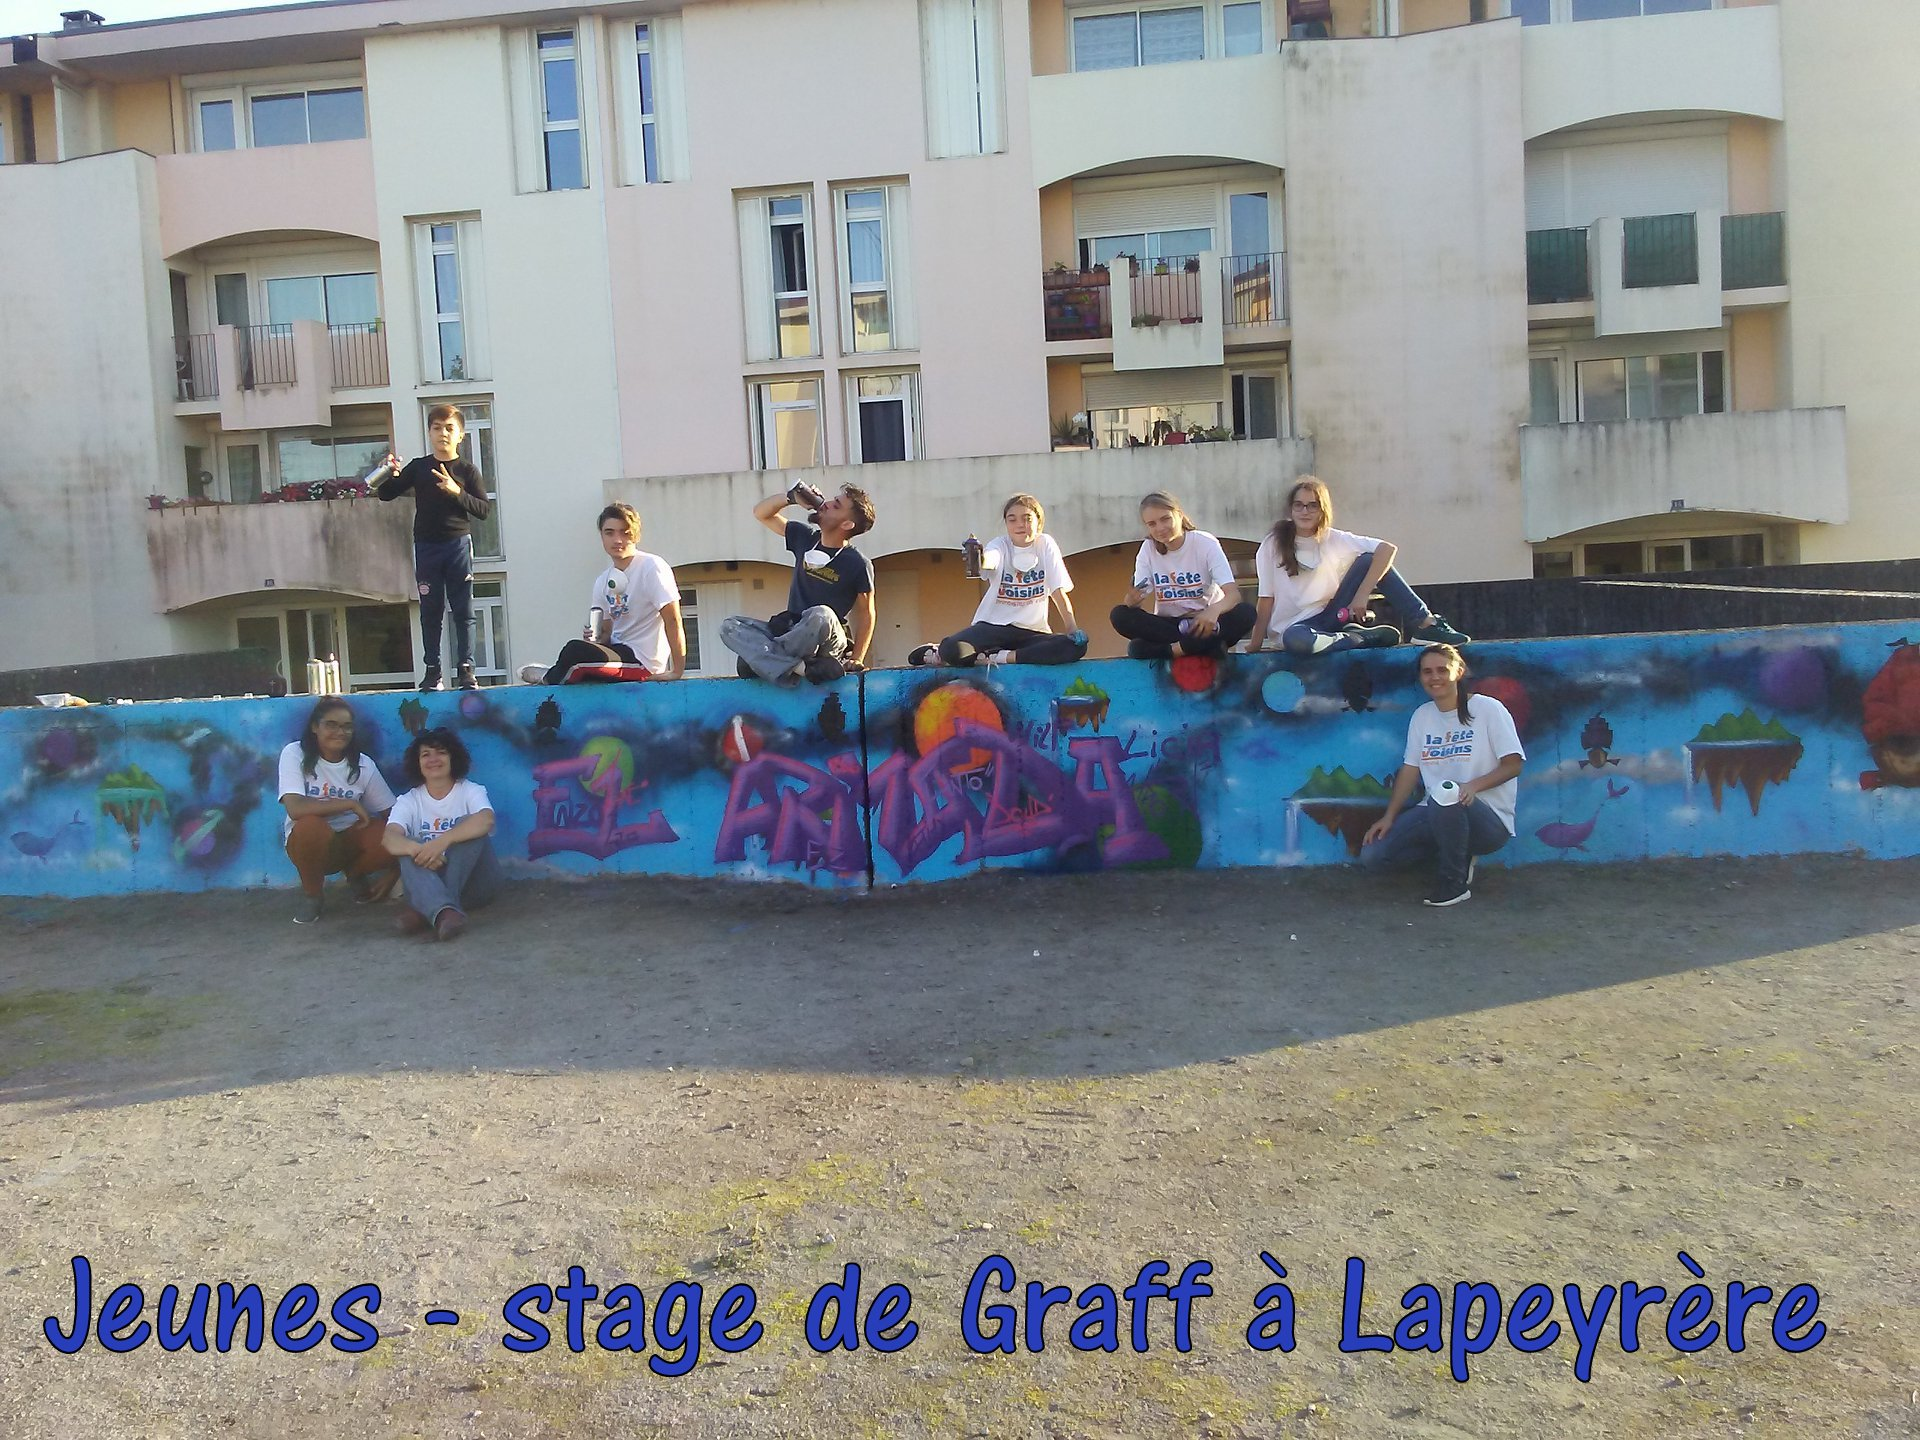 stages-de-Graff-a-Lapeyrere-2